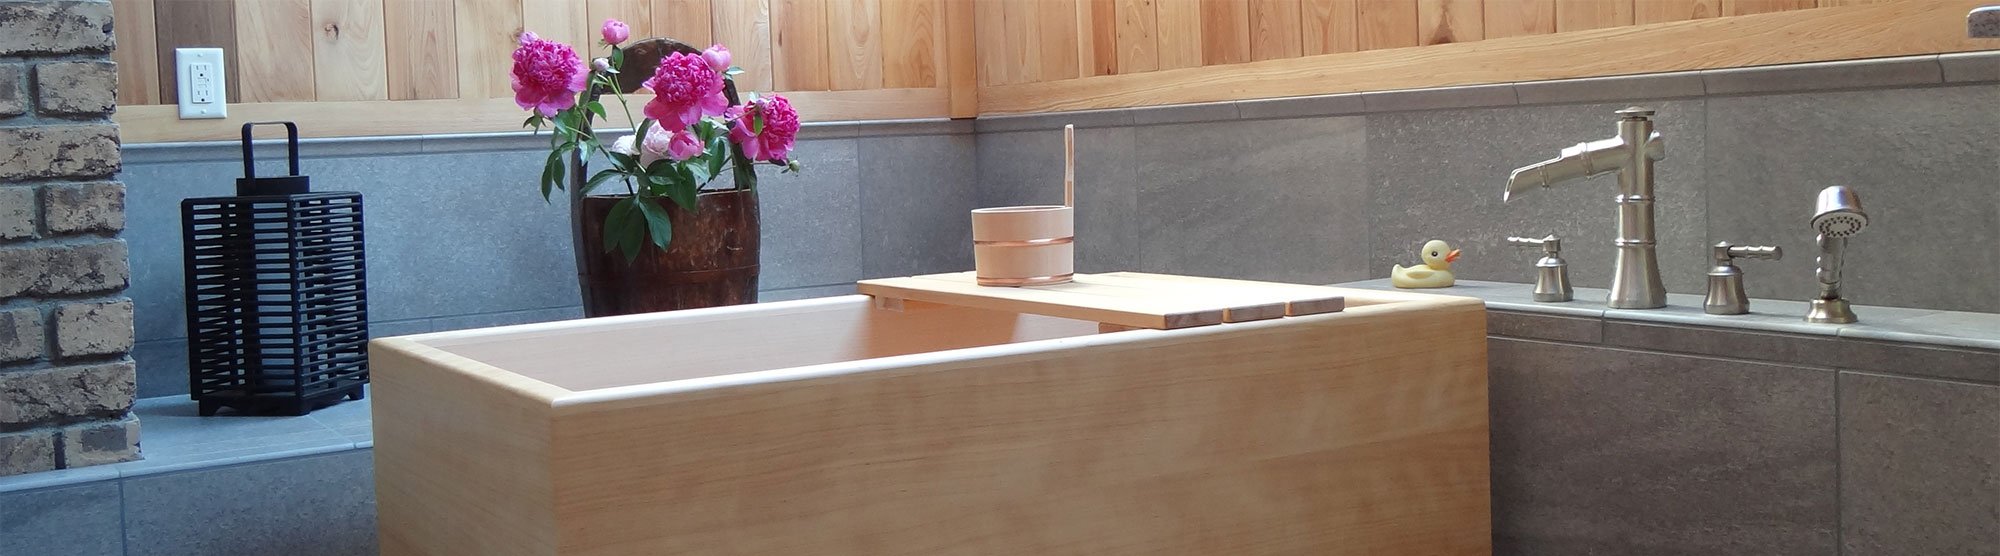 East Meets West: The Japanese Ofuro Tub